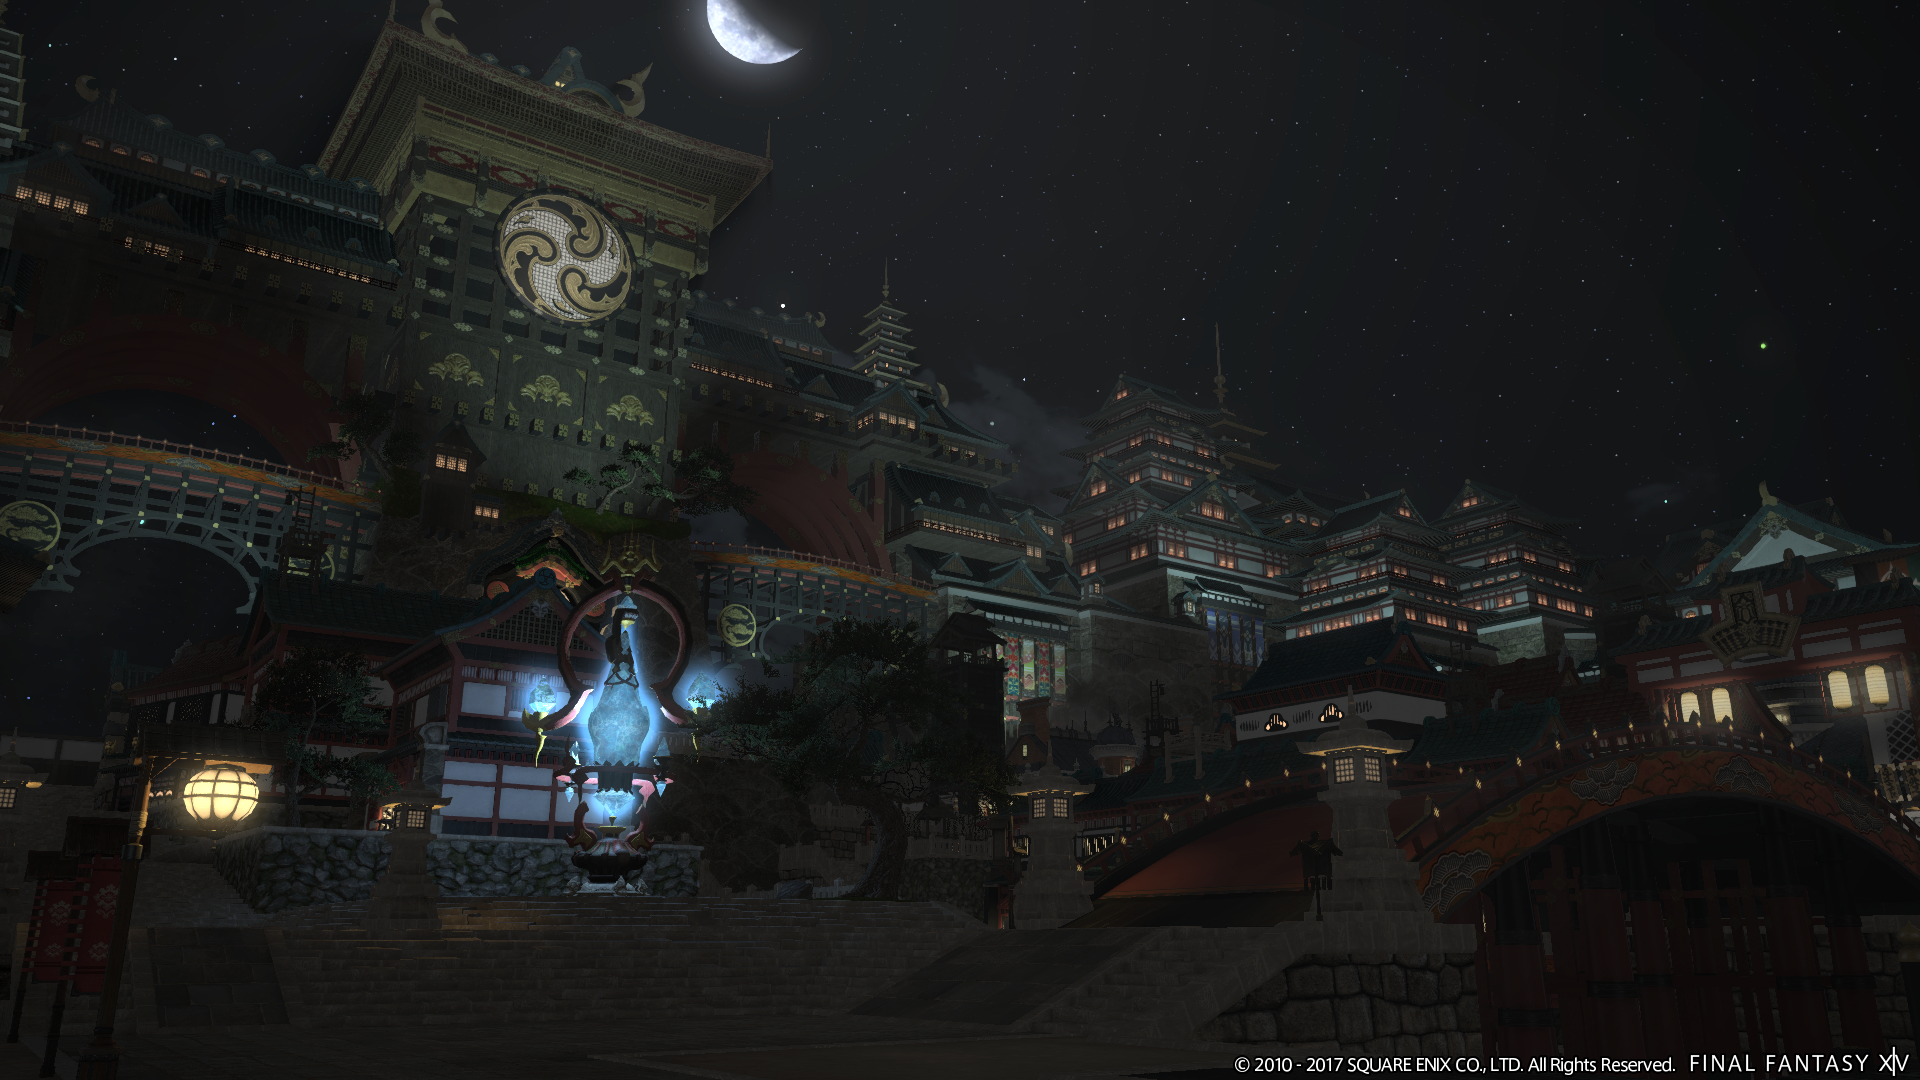 Final Fantasy XIV: Stormblood Image 9